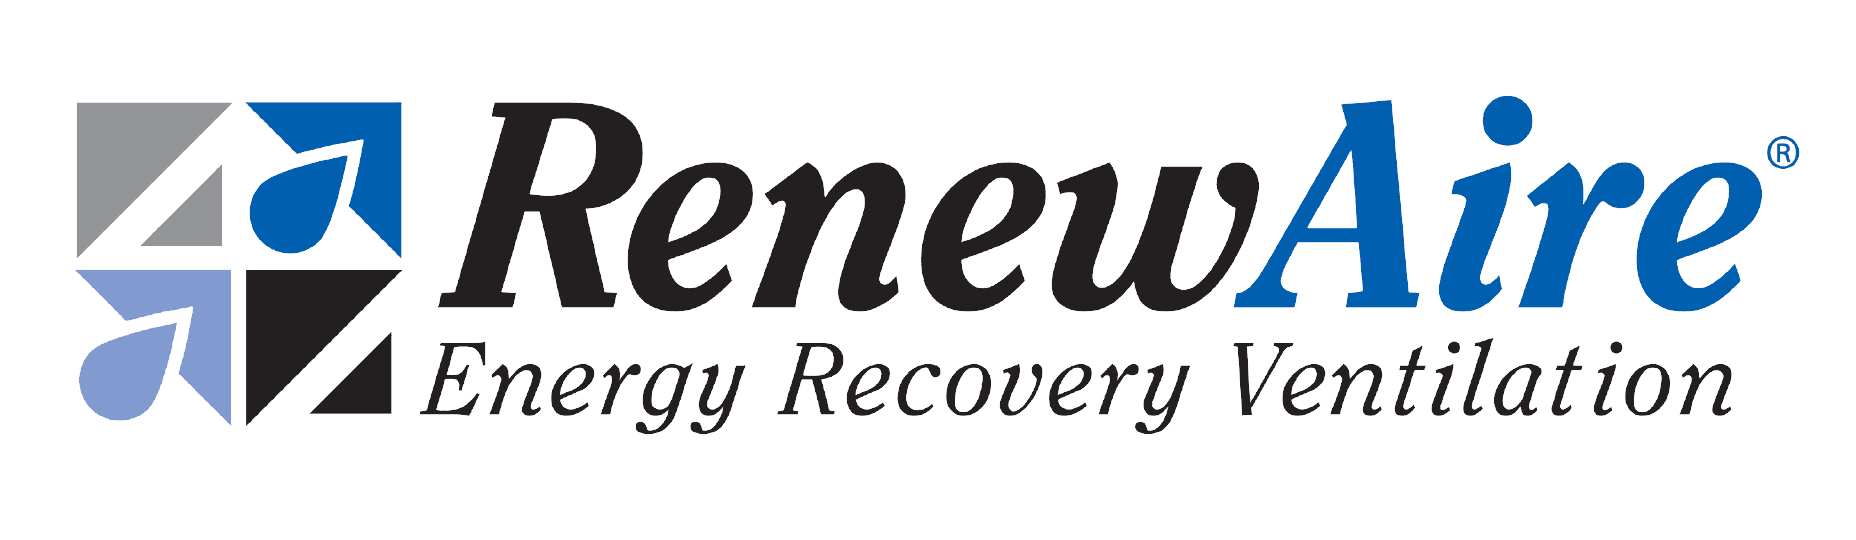 RenewAire Energy Recovery Ventilation